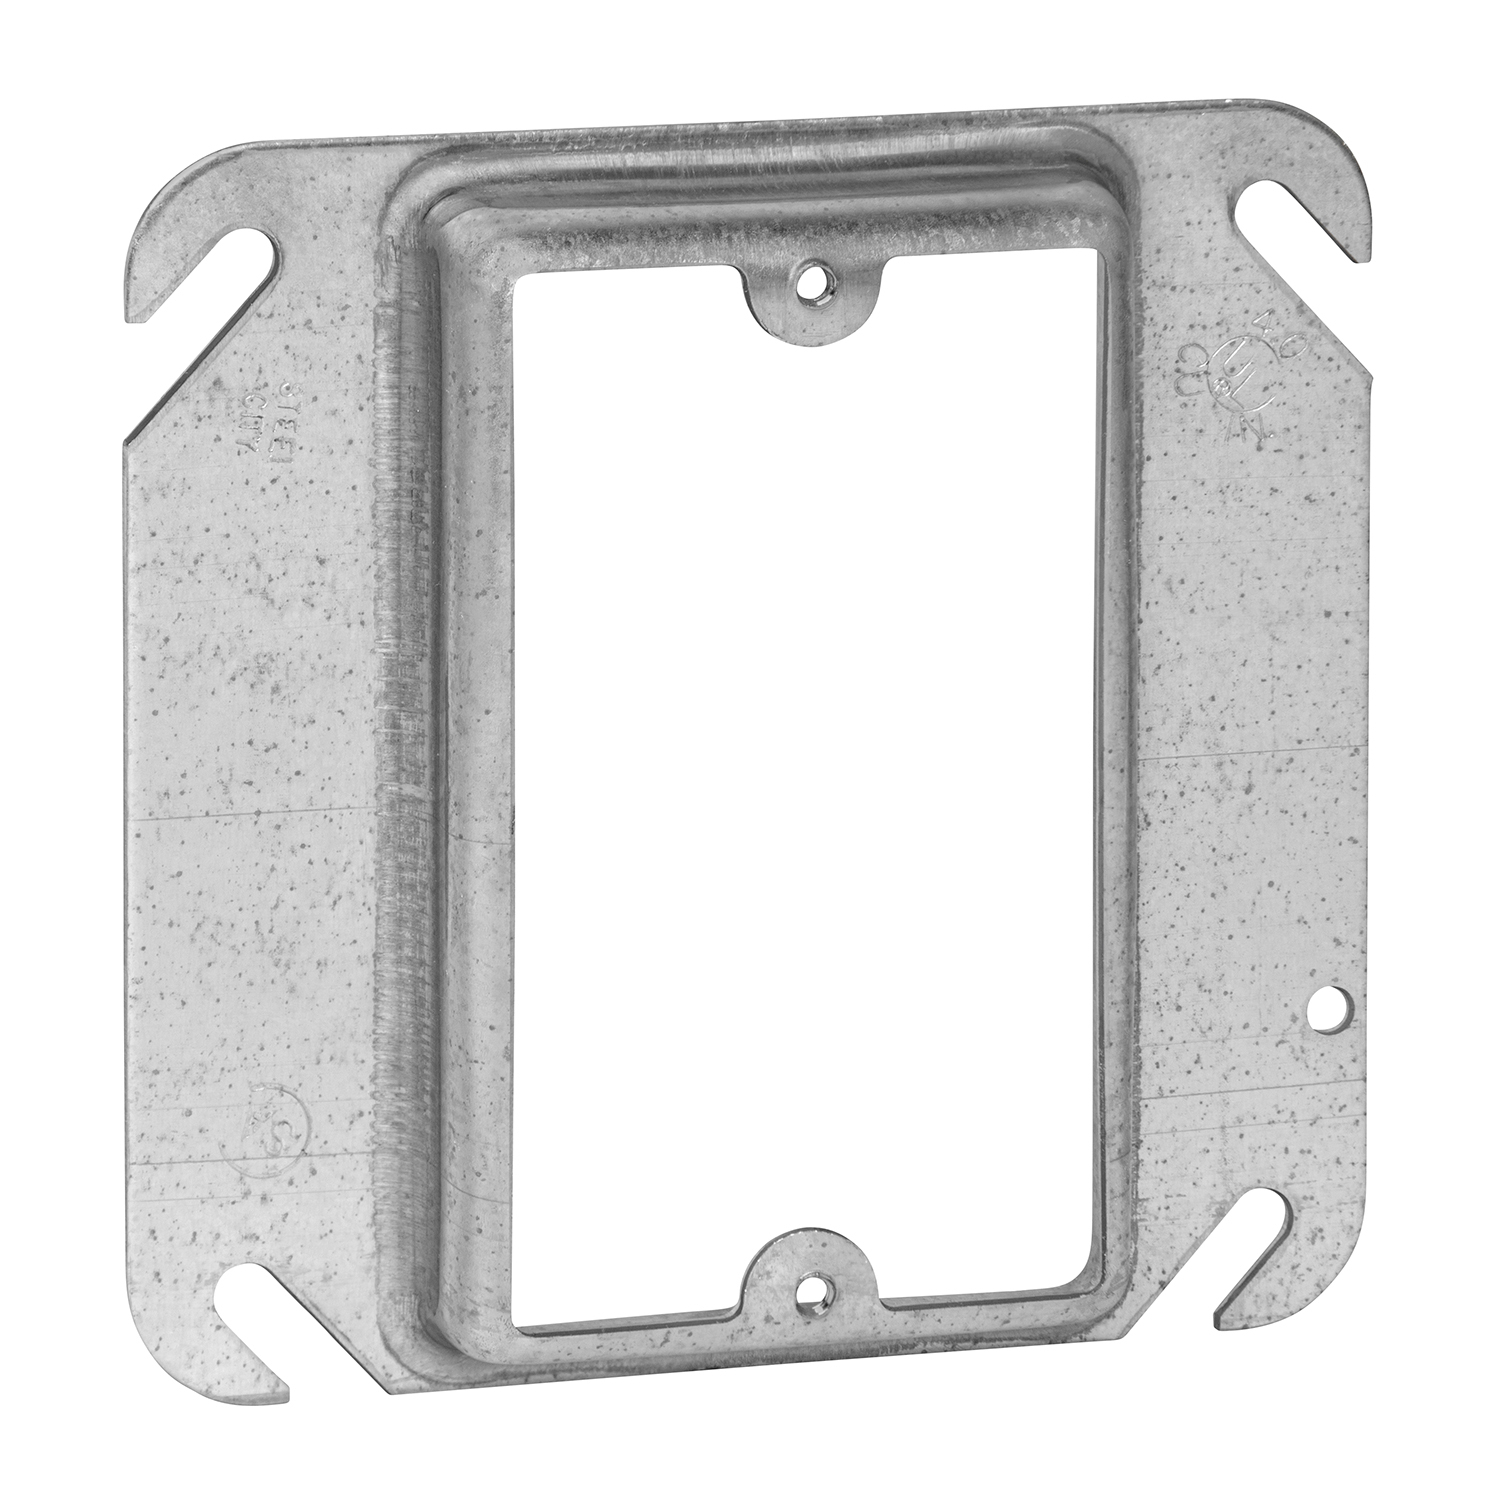 """STEELCTY 52C14 1-GANG SQUARE DEVICE COVER 5CU 4 X 3/4"""" RAISED"""